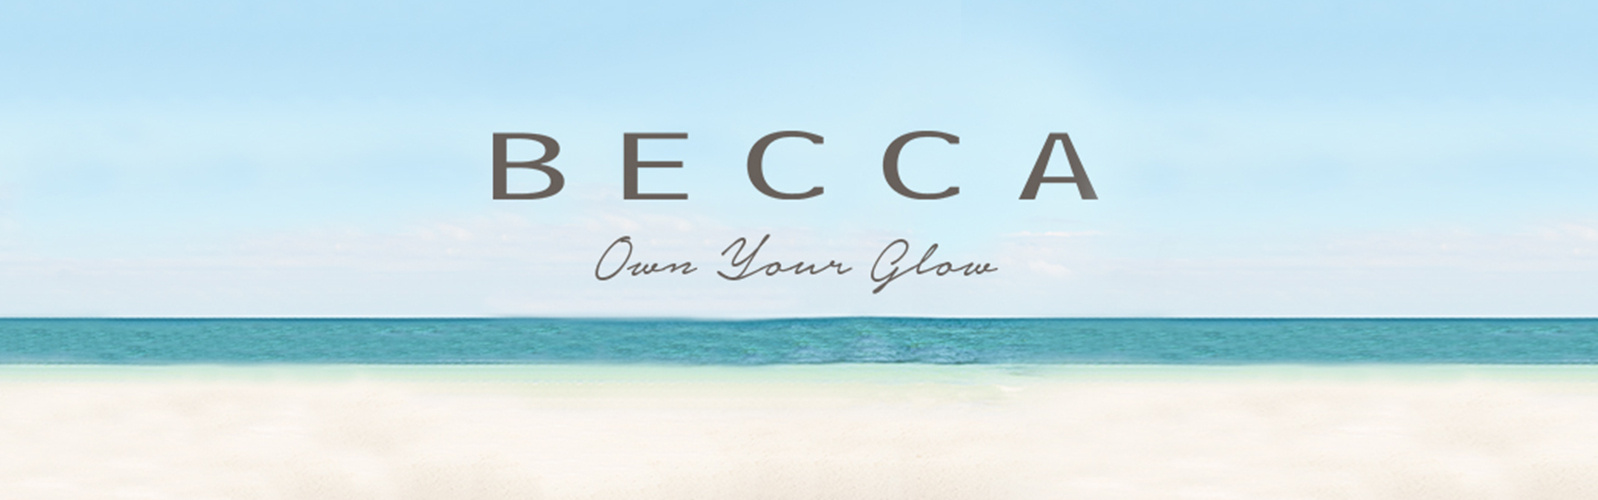 BECCA. Own your Glow